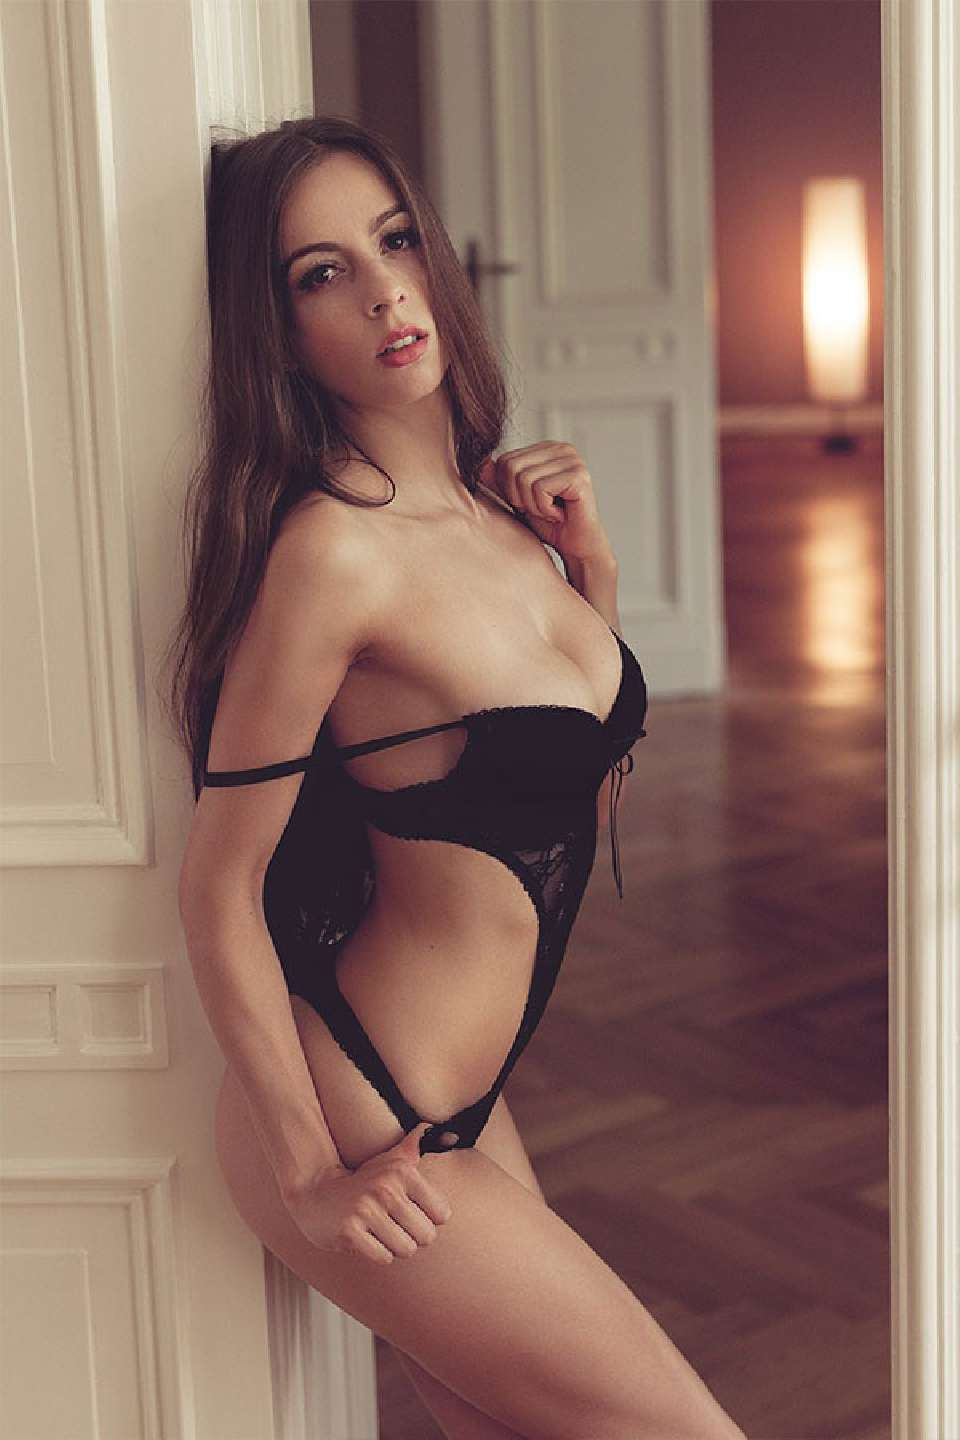 Model Simi Sensual Lingerie Shooting in a Appartment with Axel Heinrichs